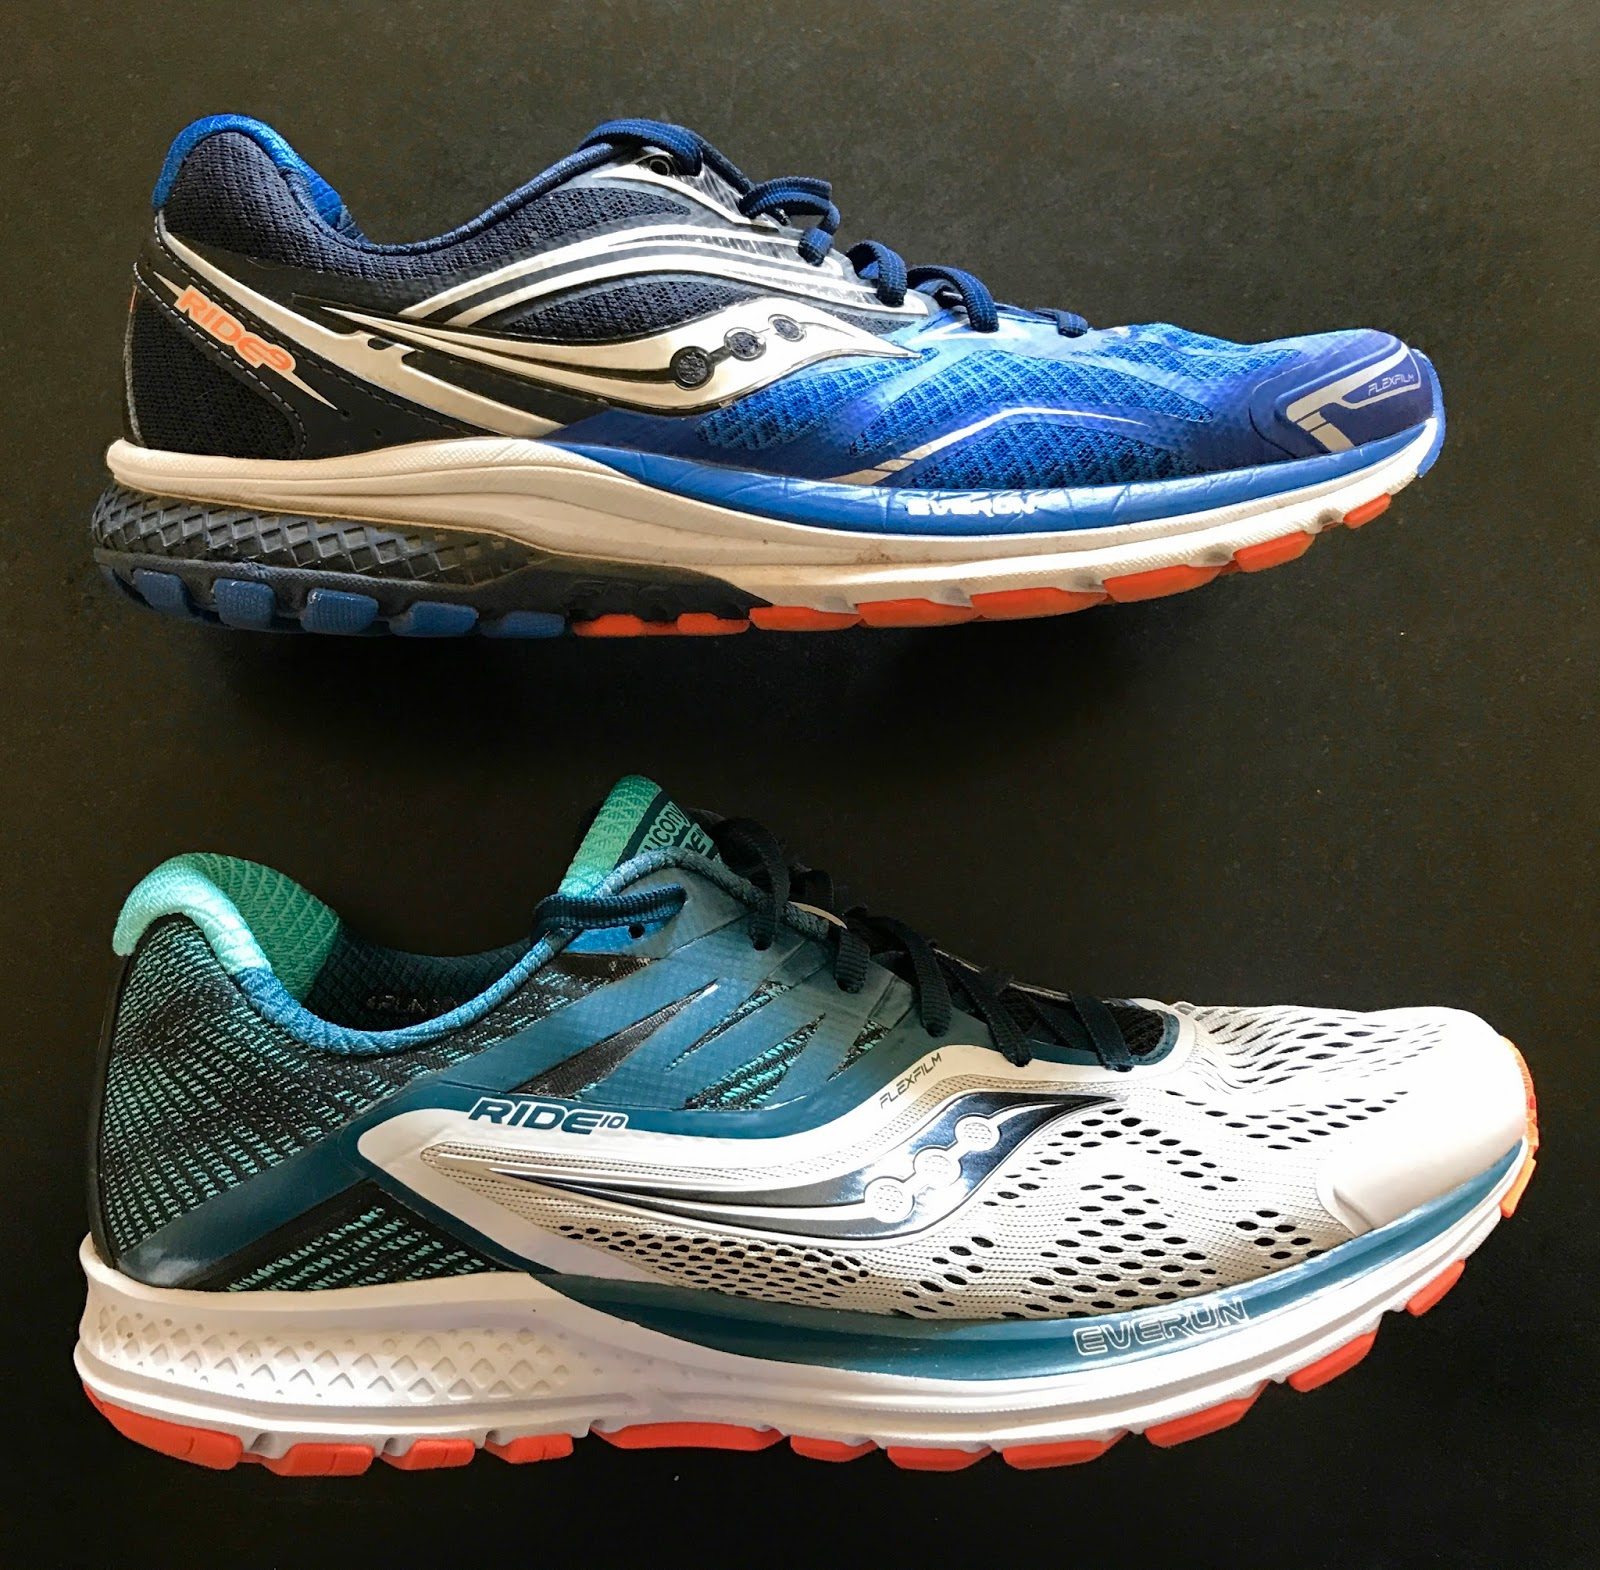 30116b93d11 Road Trail Run  Saucony Ride 10 Review  What a Daily Trainer Should ...